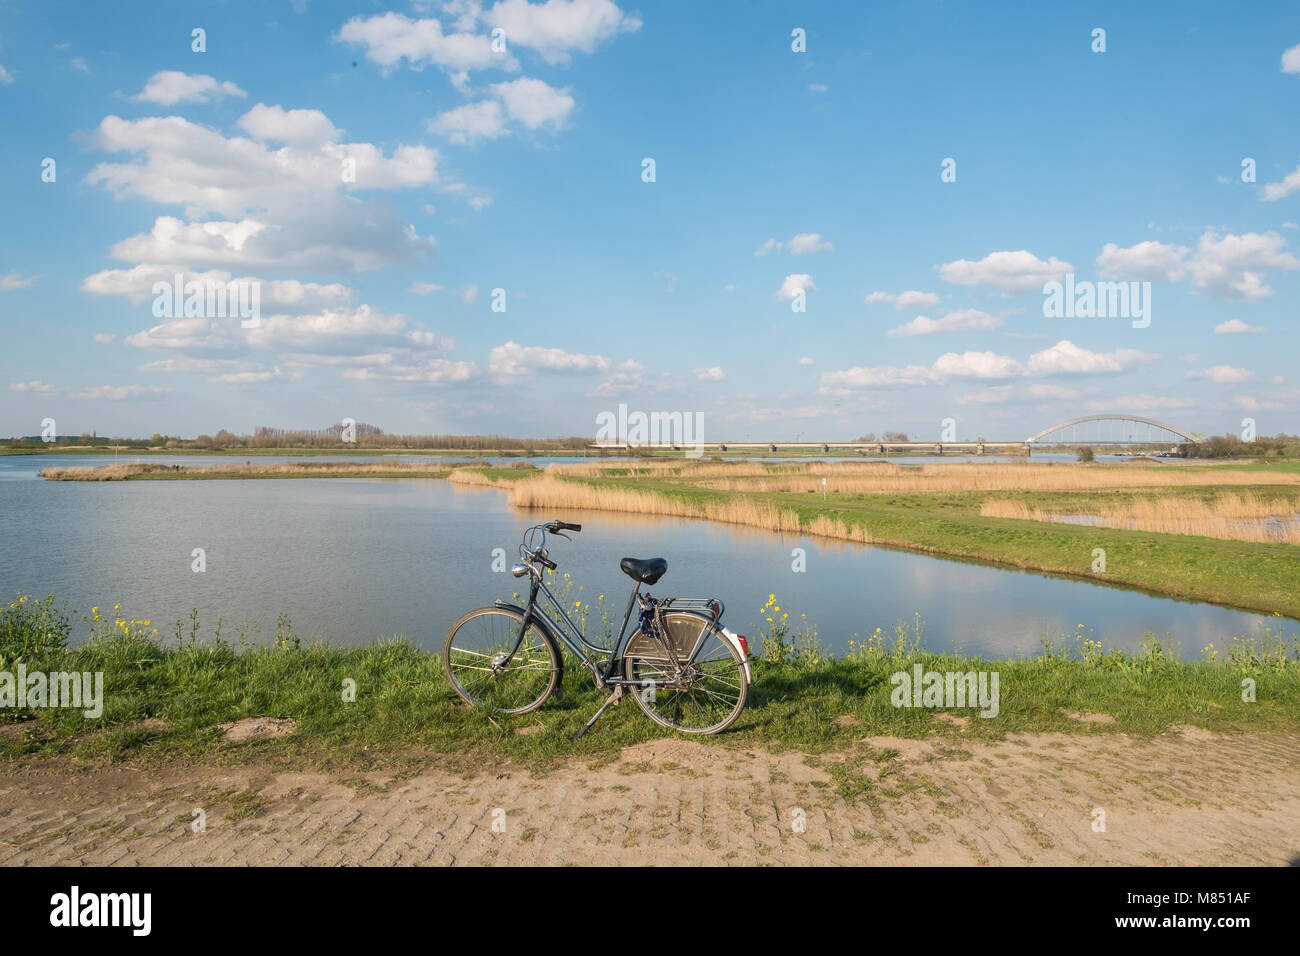 Spring in the Netherlands. - Stock Image